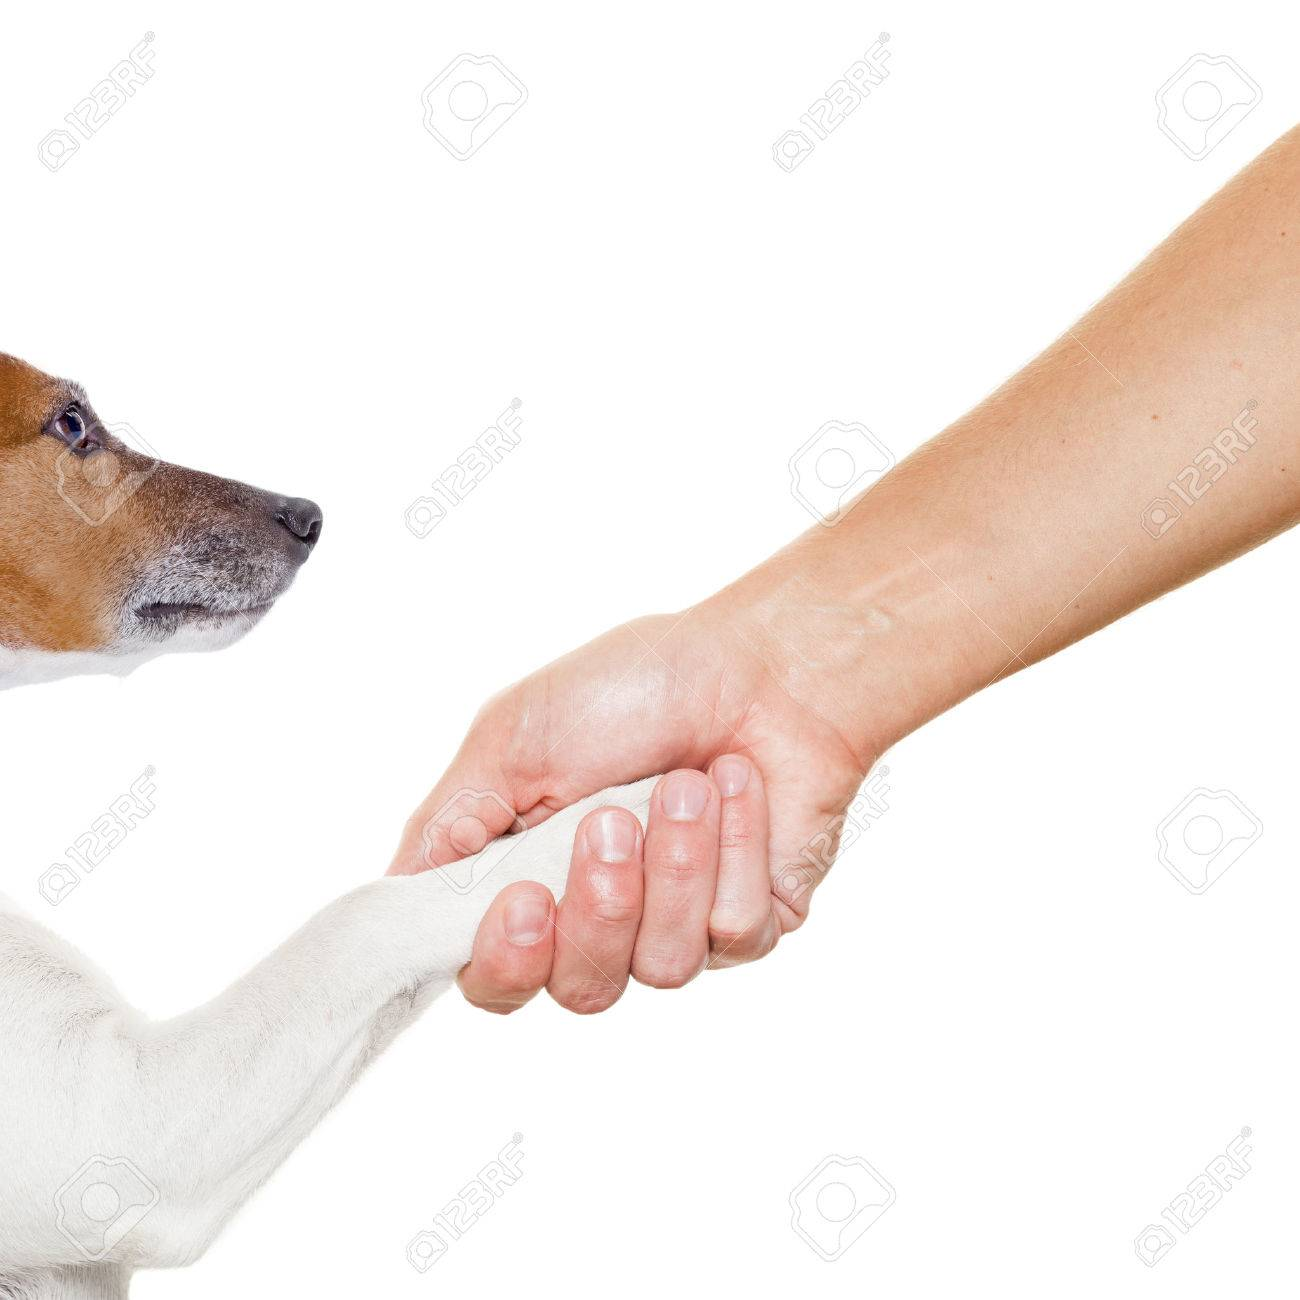 dog and owner handshaking or shaking hands dog with paw and